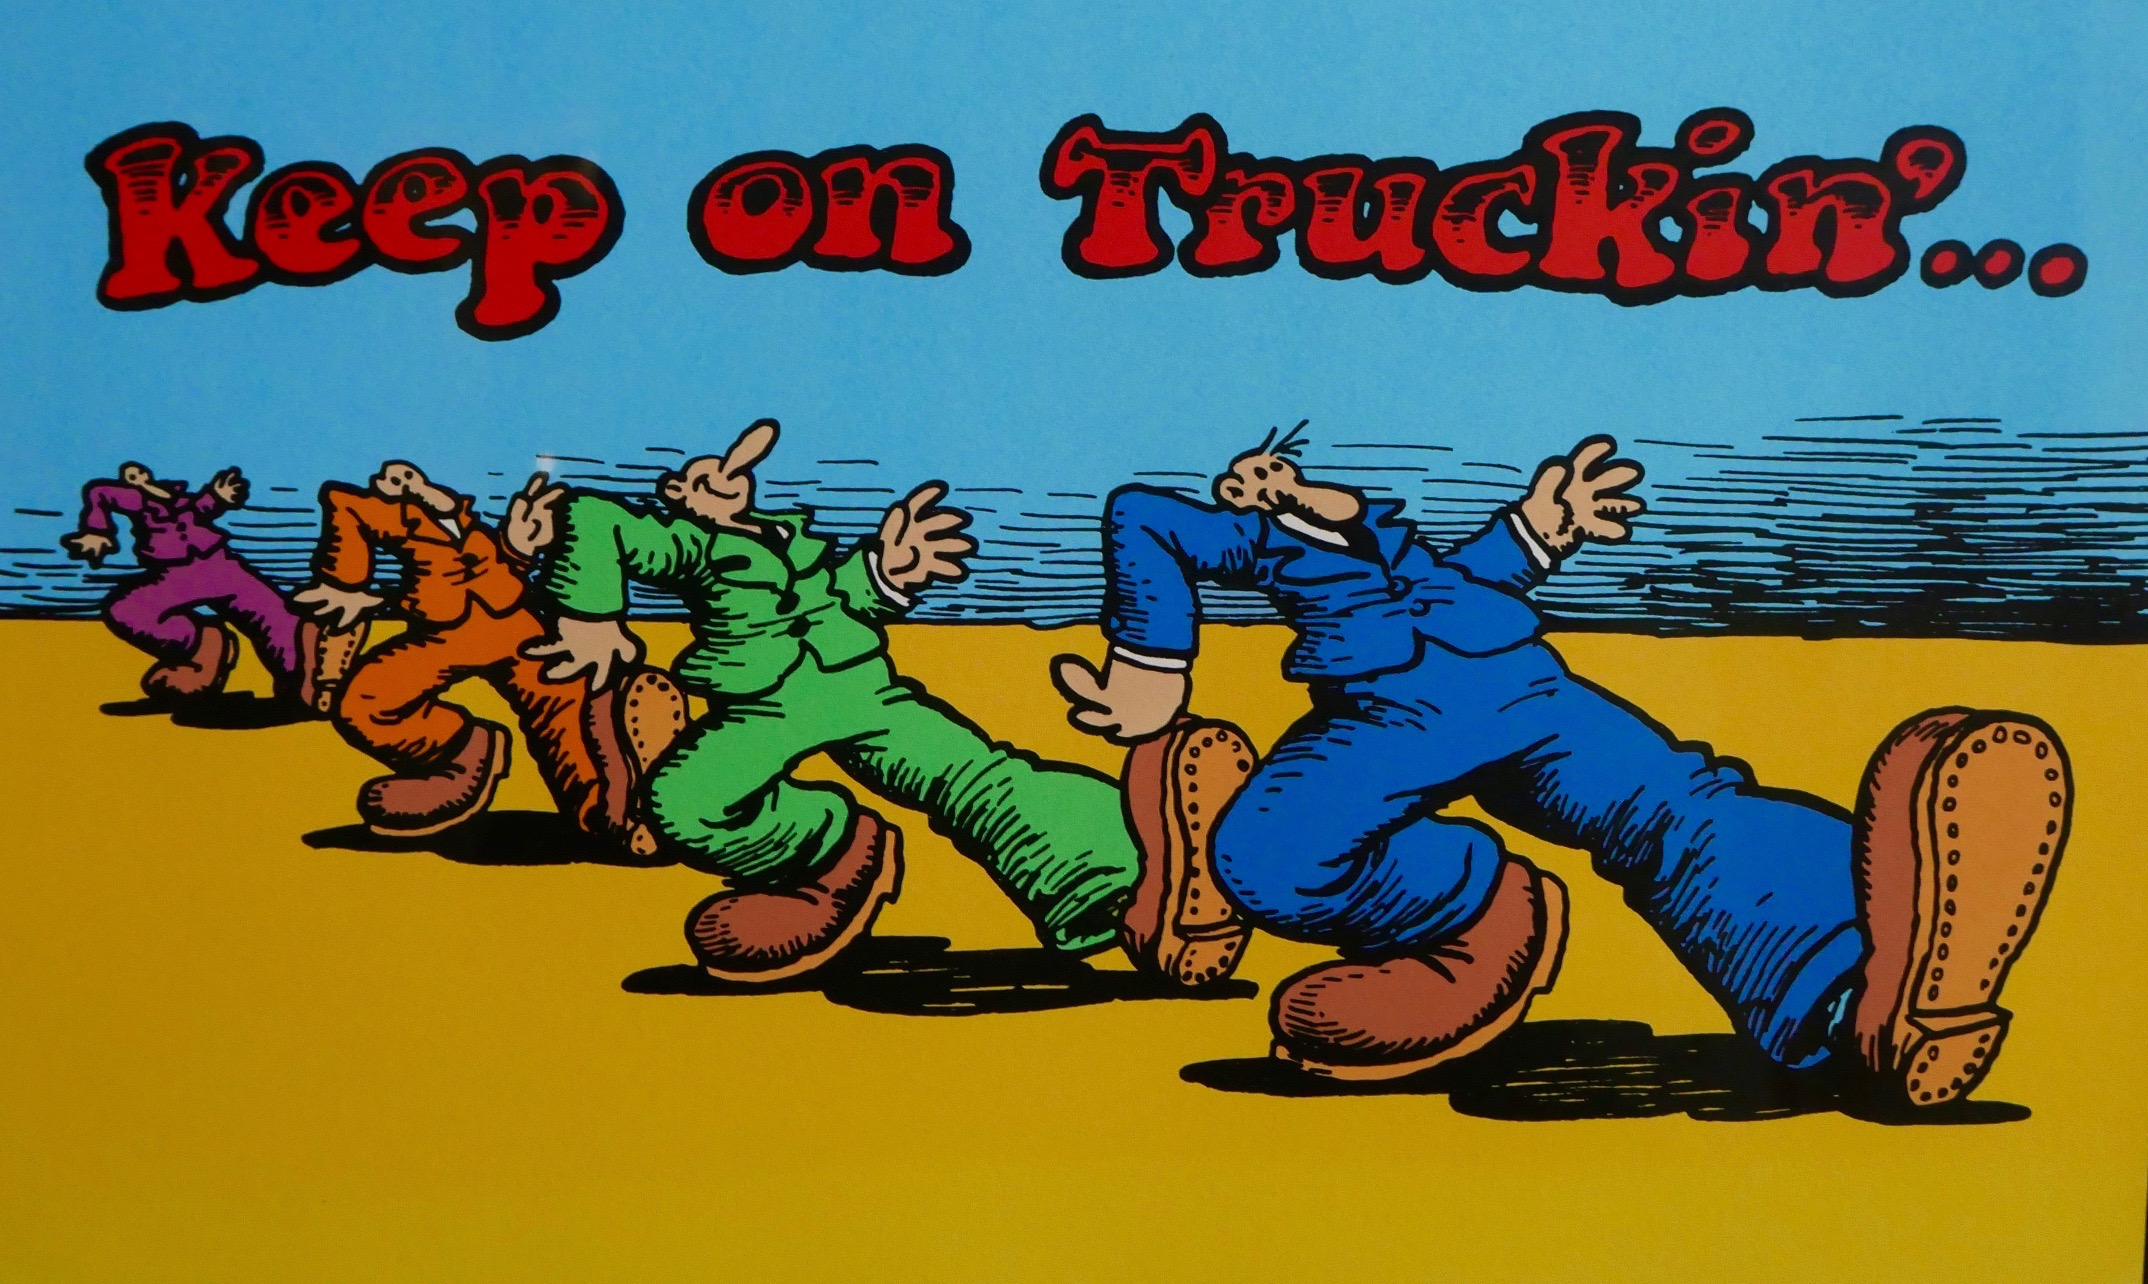 A drawing by R. Crumb entitled